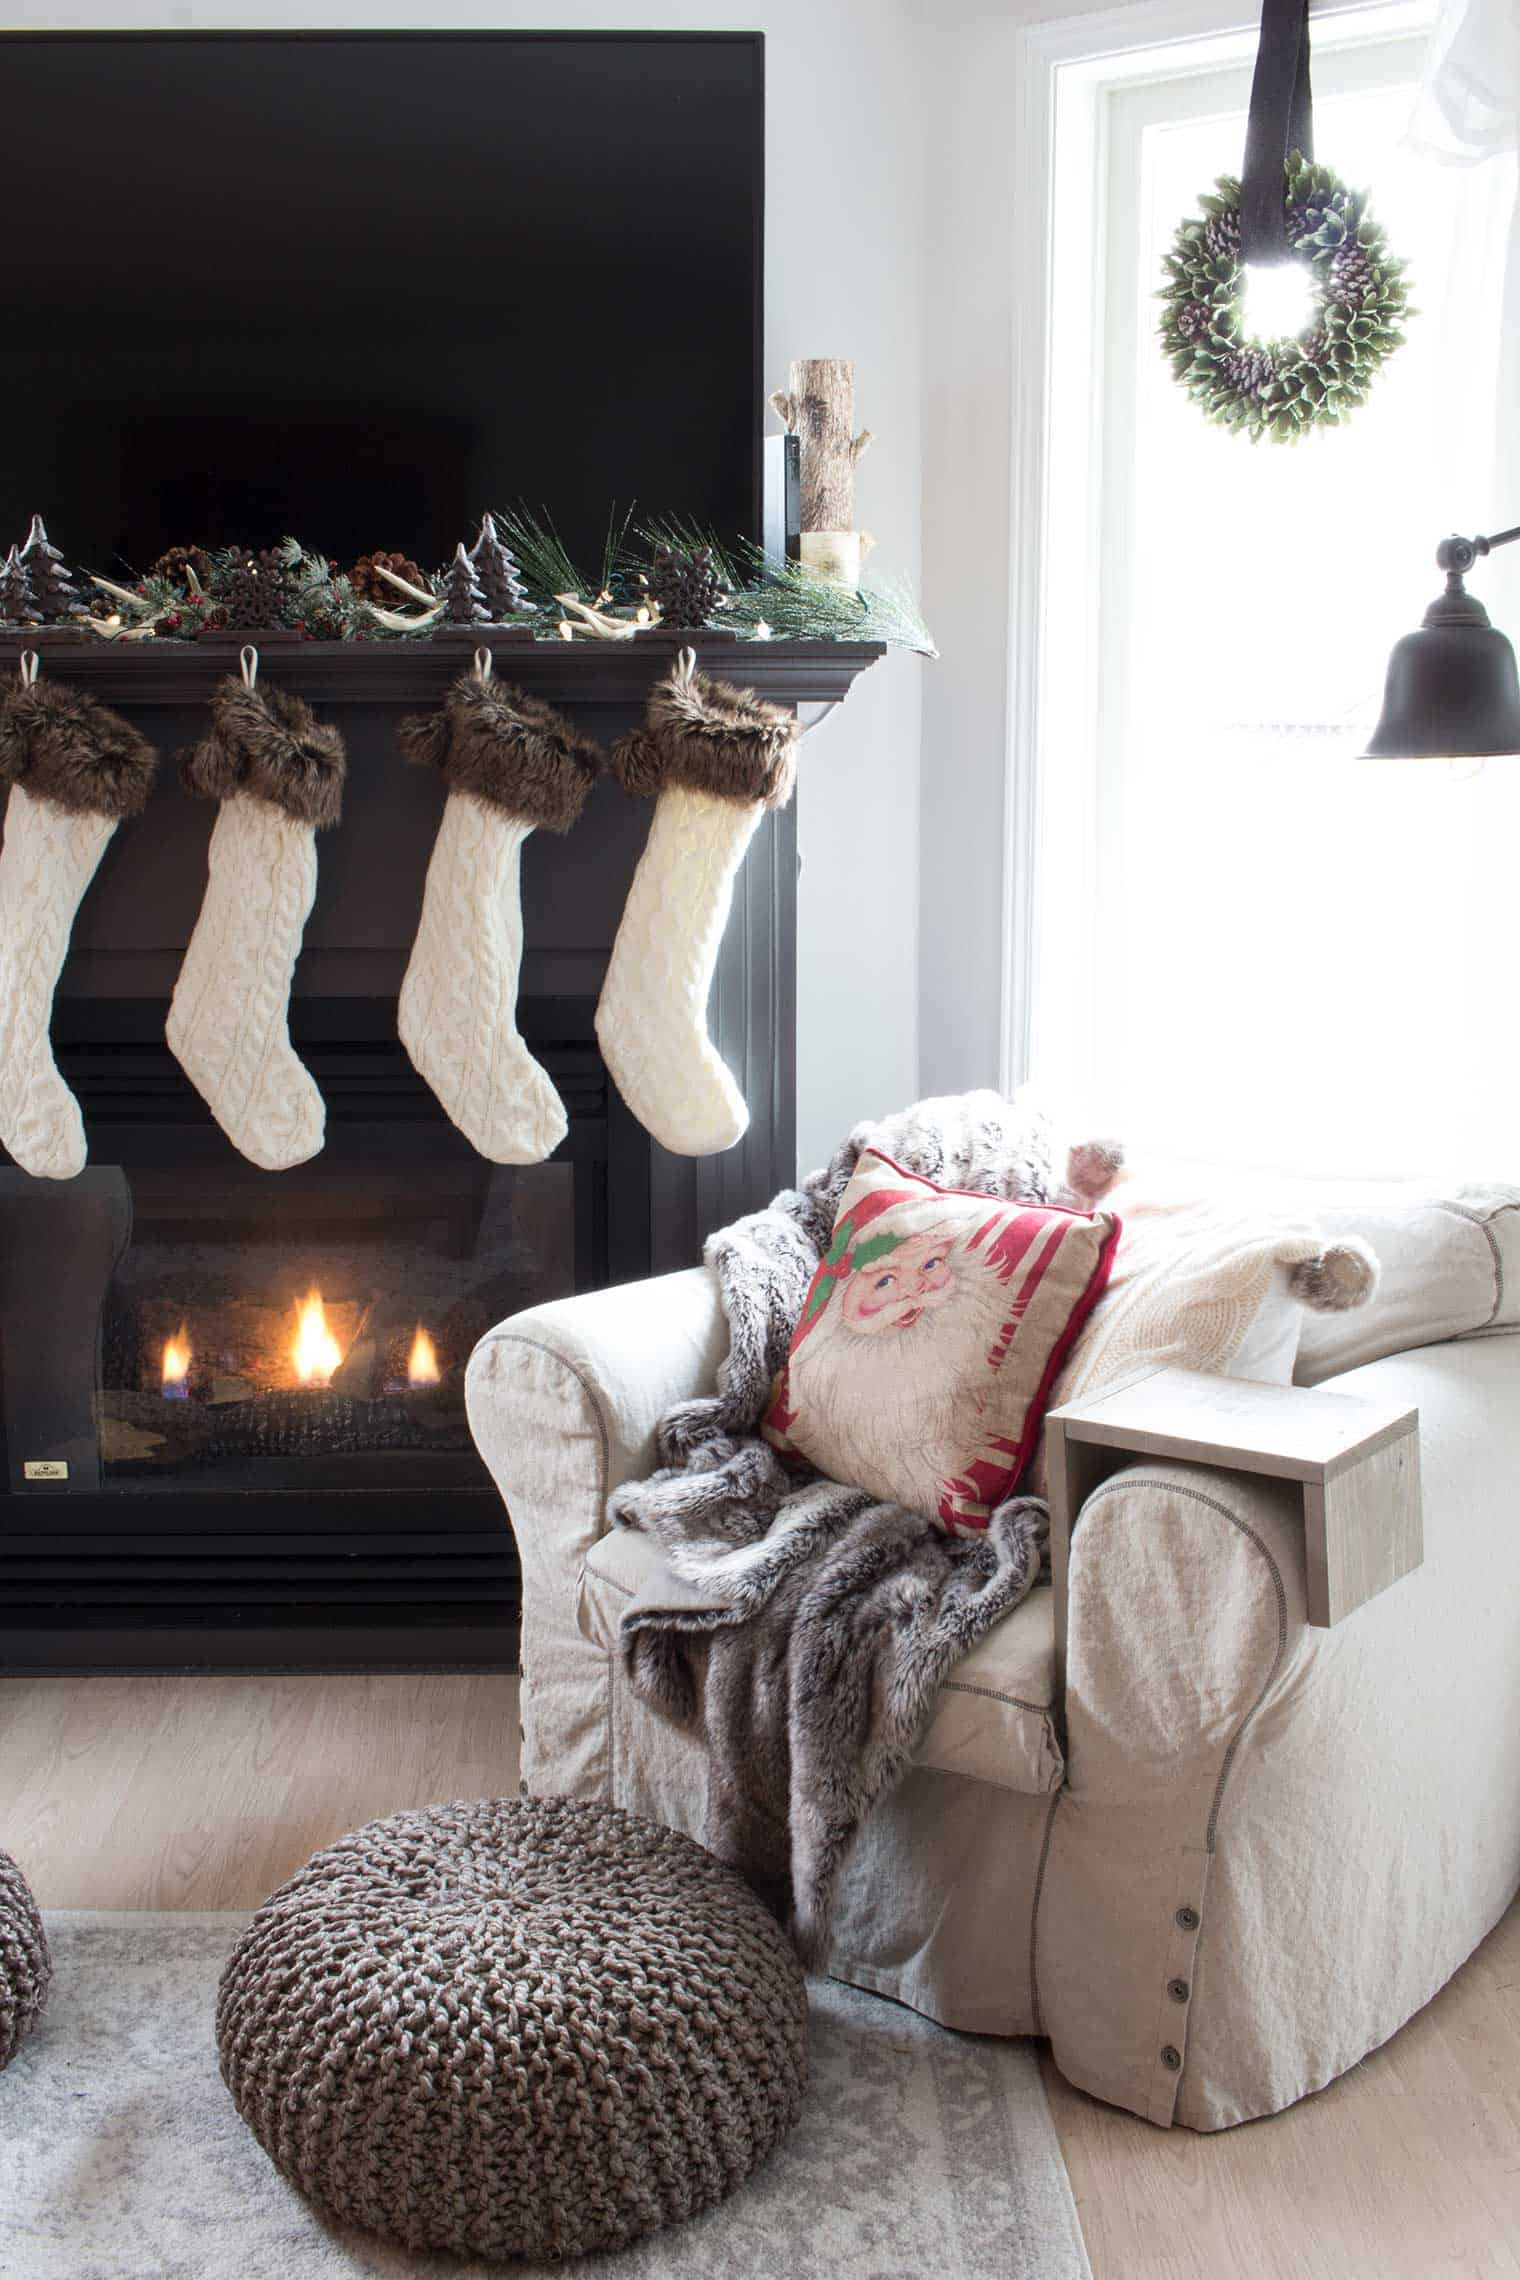 grey-fireplace-mantel-with-cream-stockings